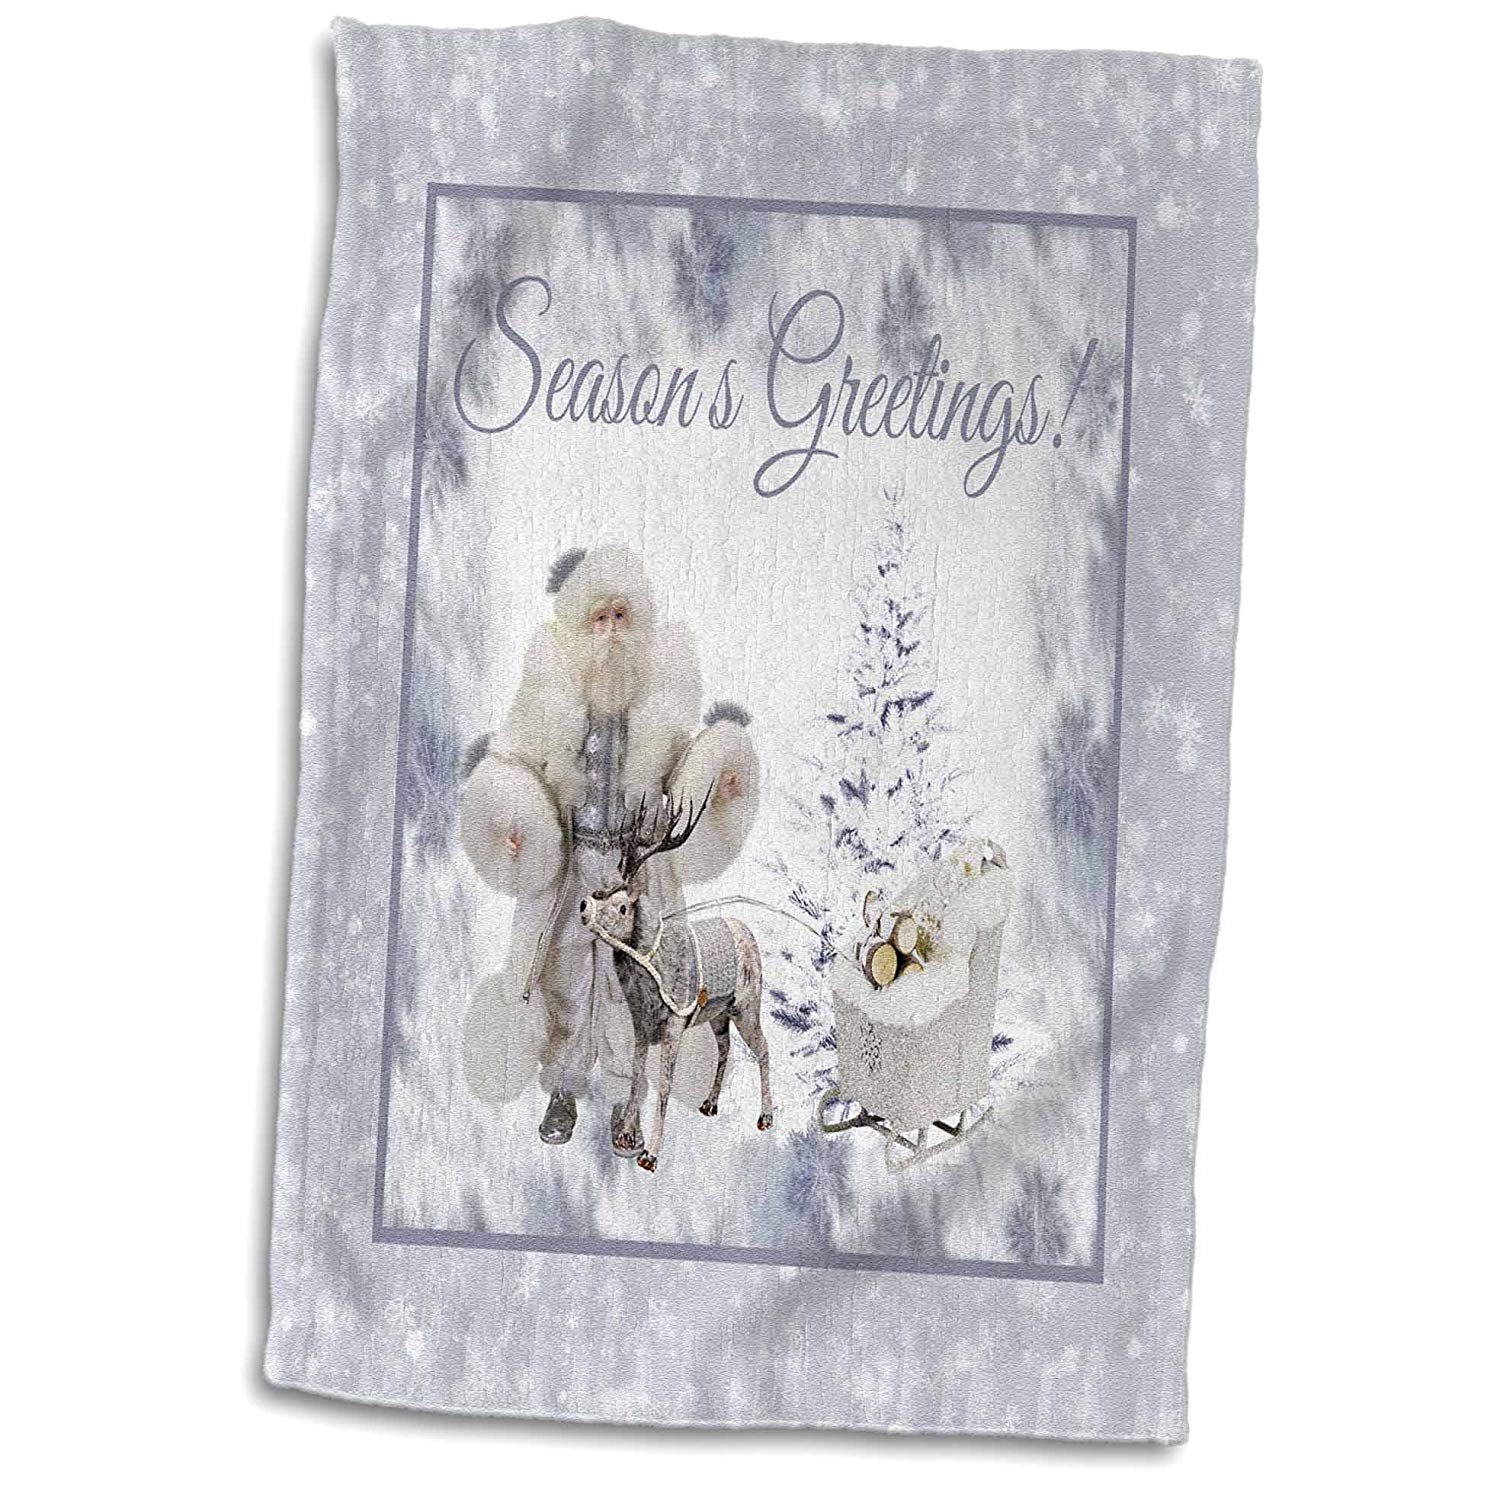 3dRose Beverly Turner Christmas Design - Santa Claus, Reindeer, Sleigh, Wood, Blue Snowflakes, Season Greetings - 15x22 Hand Towel (twl_267959_1)